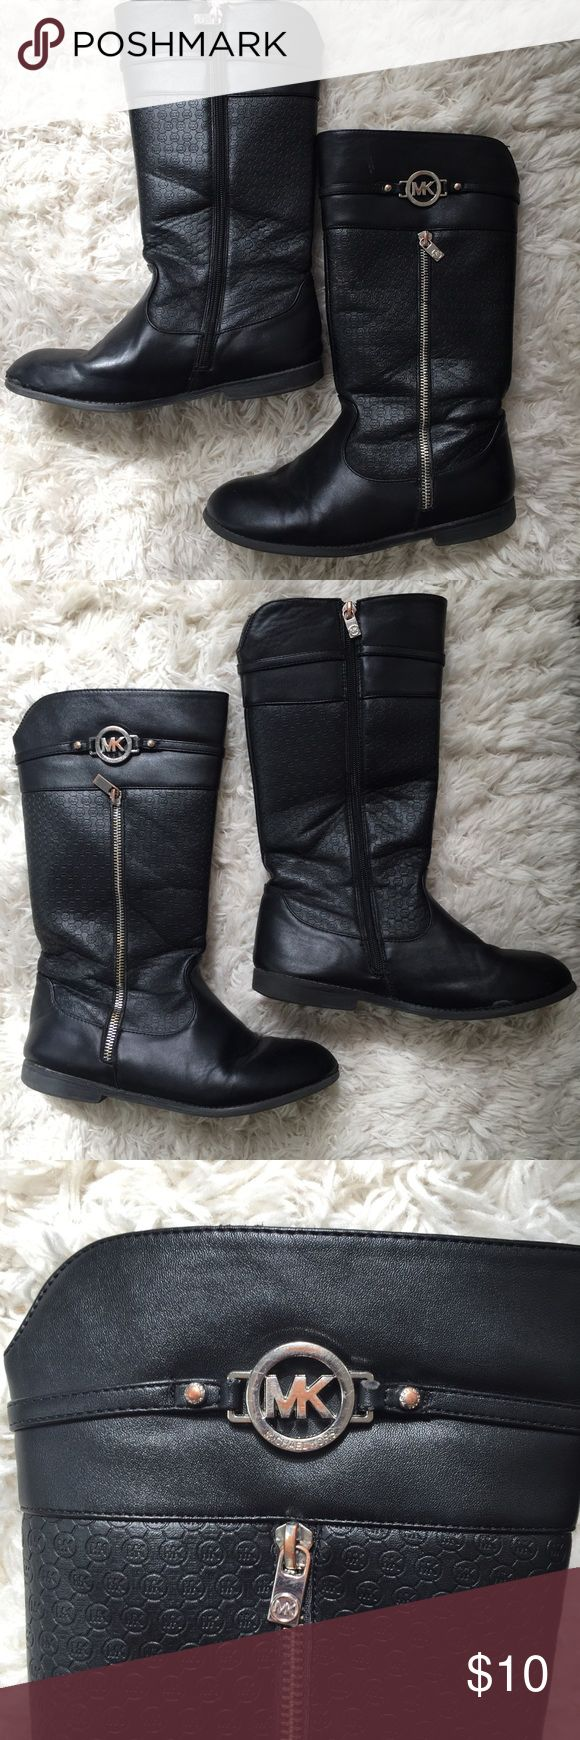 Girls MK Boots Used condition, signs of wear, but still has lots of use left! Michael Kors Shoes Boots